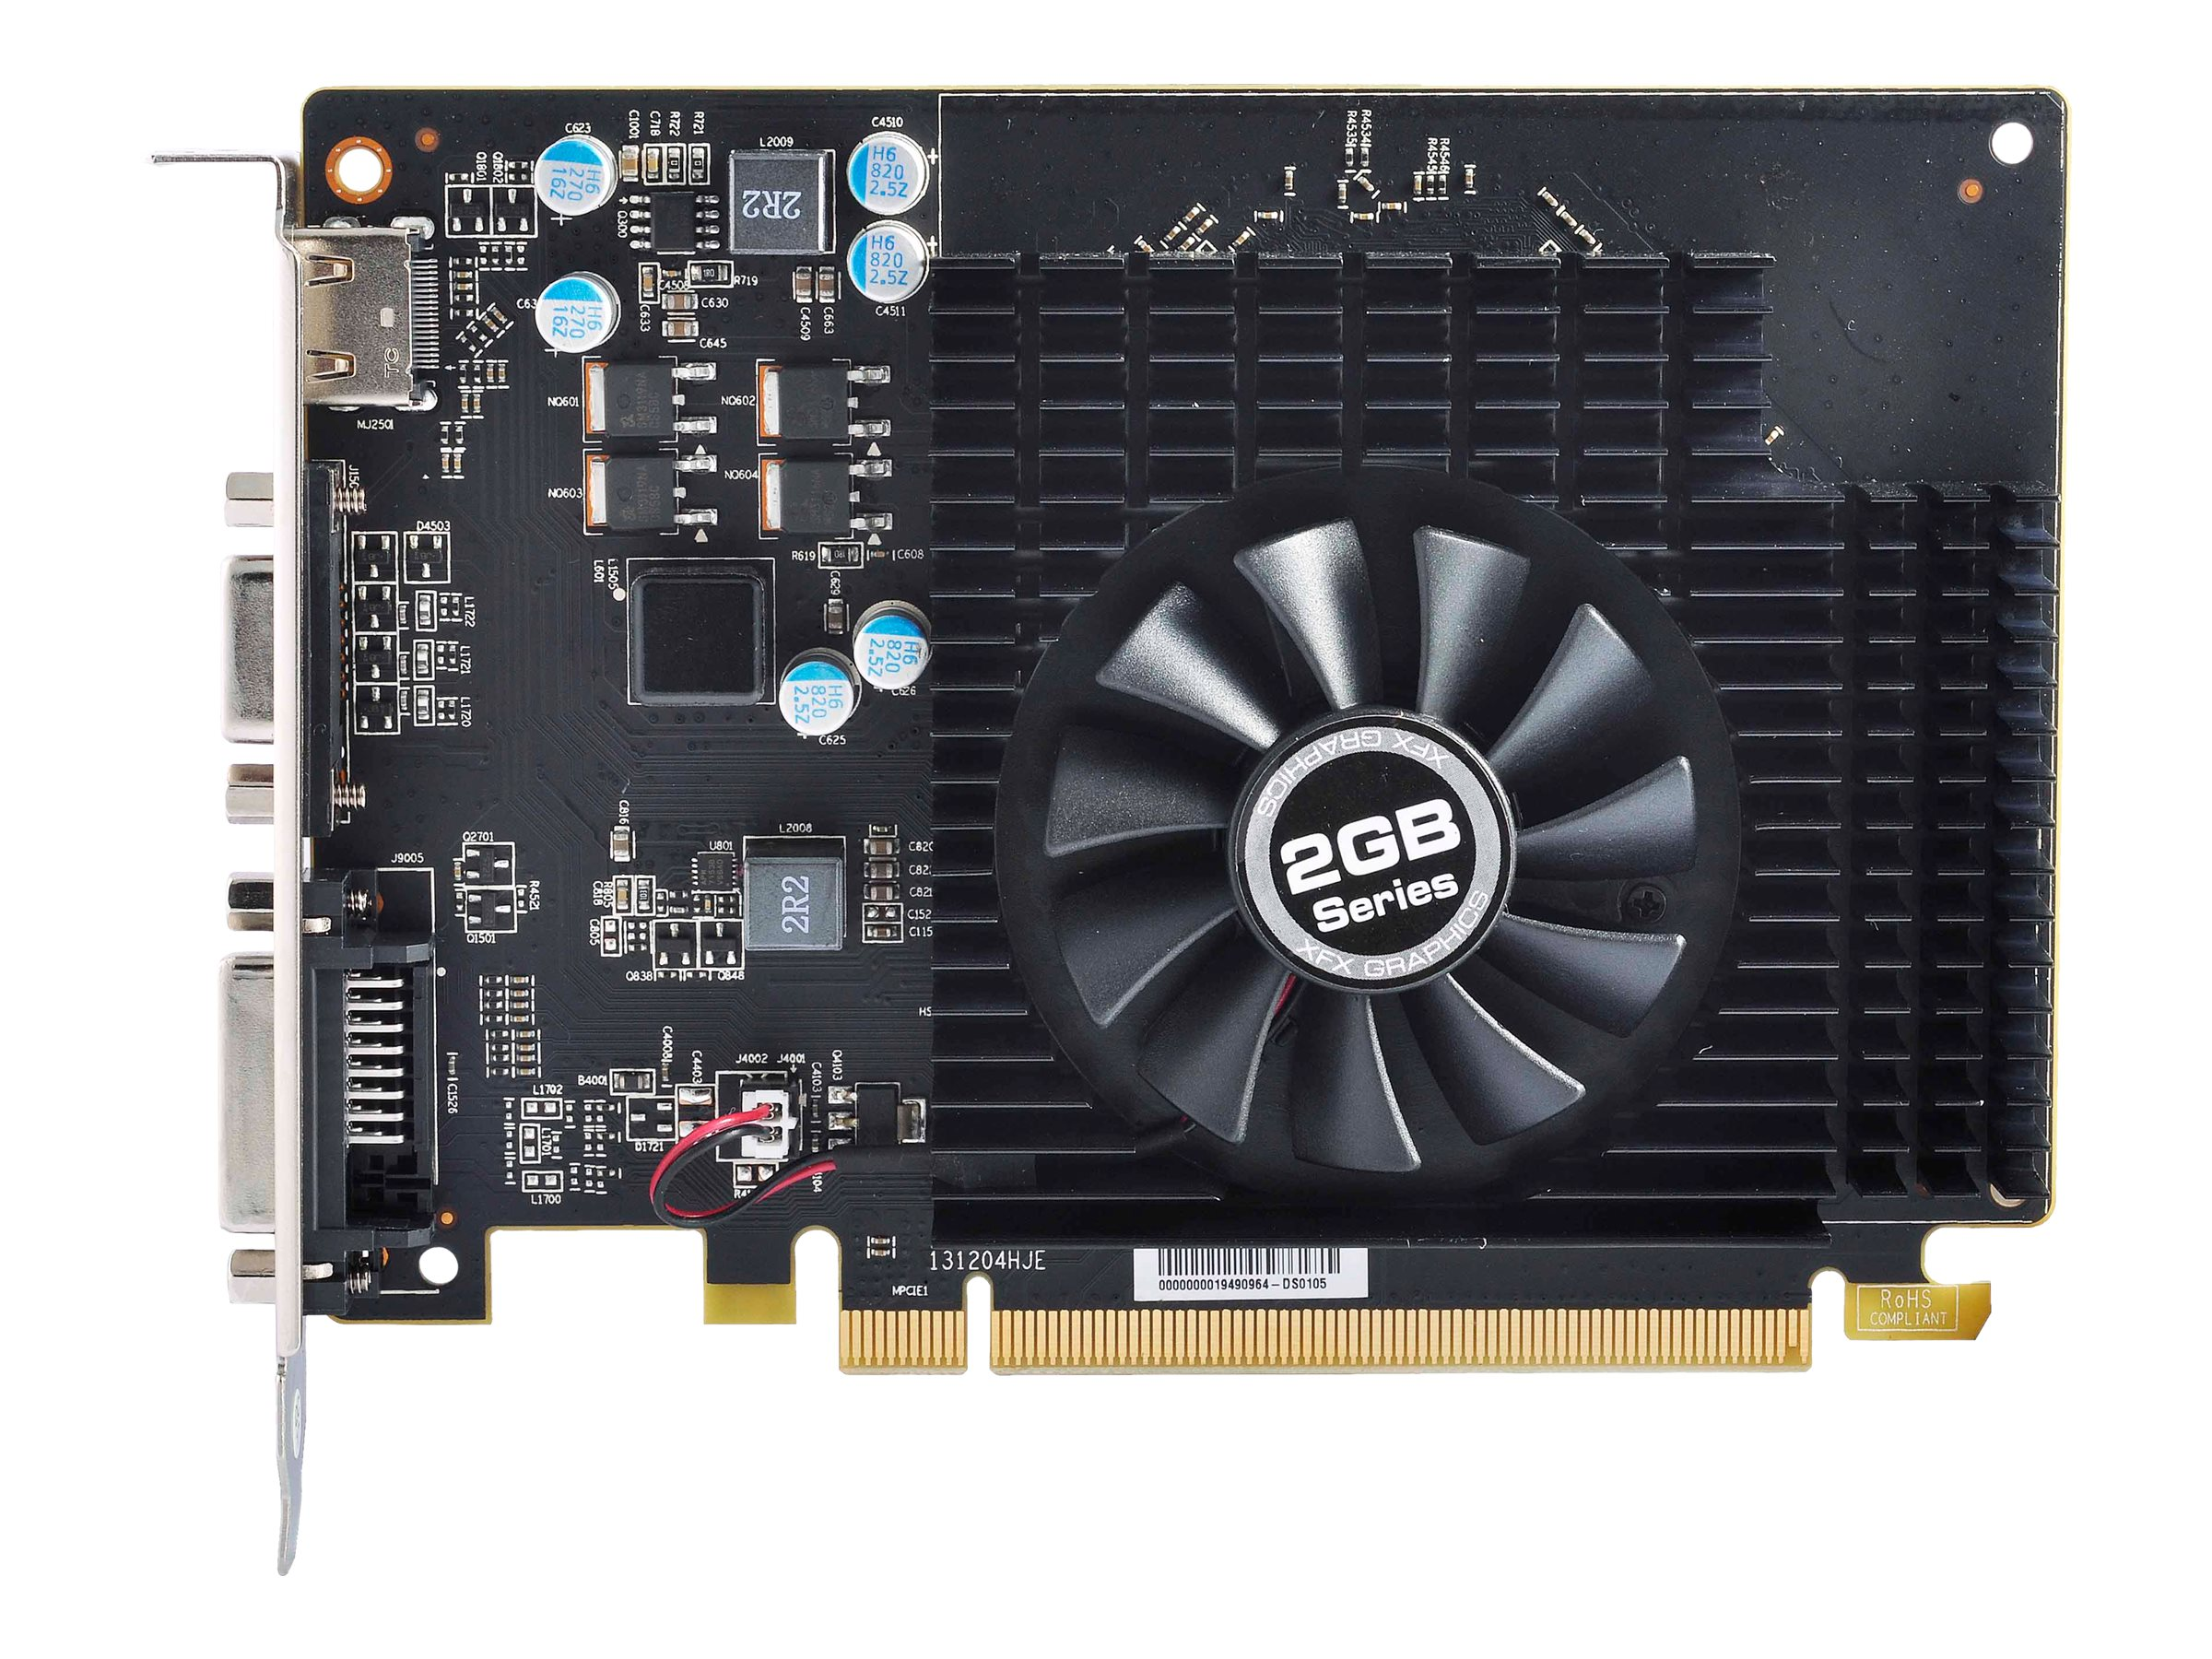 Pine Radeon R7240 PCIe 3.0 Graphics Card, 2GB DDR3, R7240A2TS2